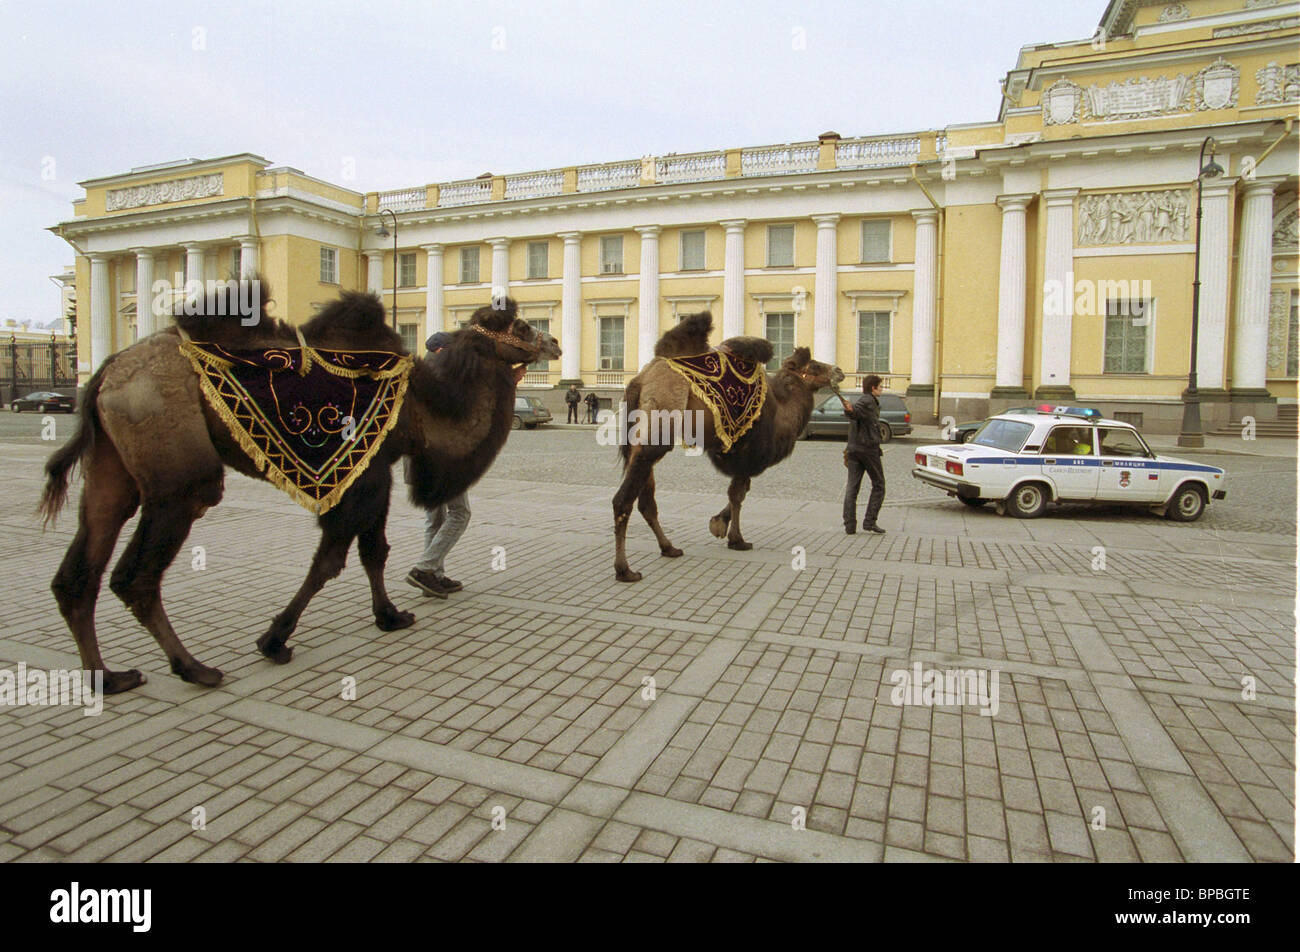 Two camels sent to St.Petersburg circus from Kalmykiya. - Stock Image